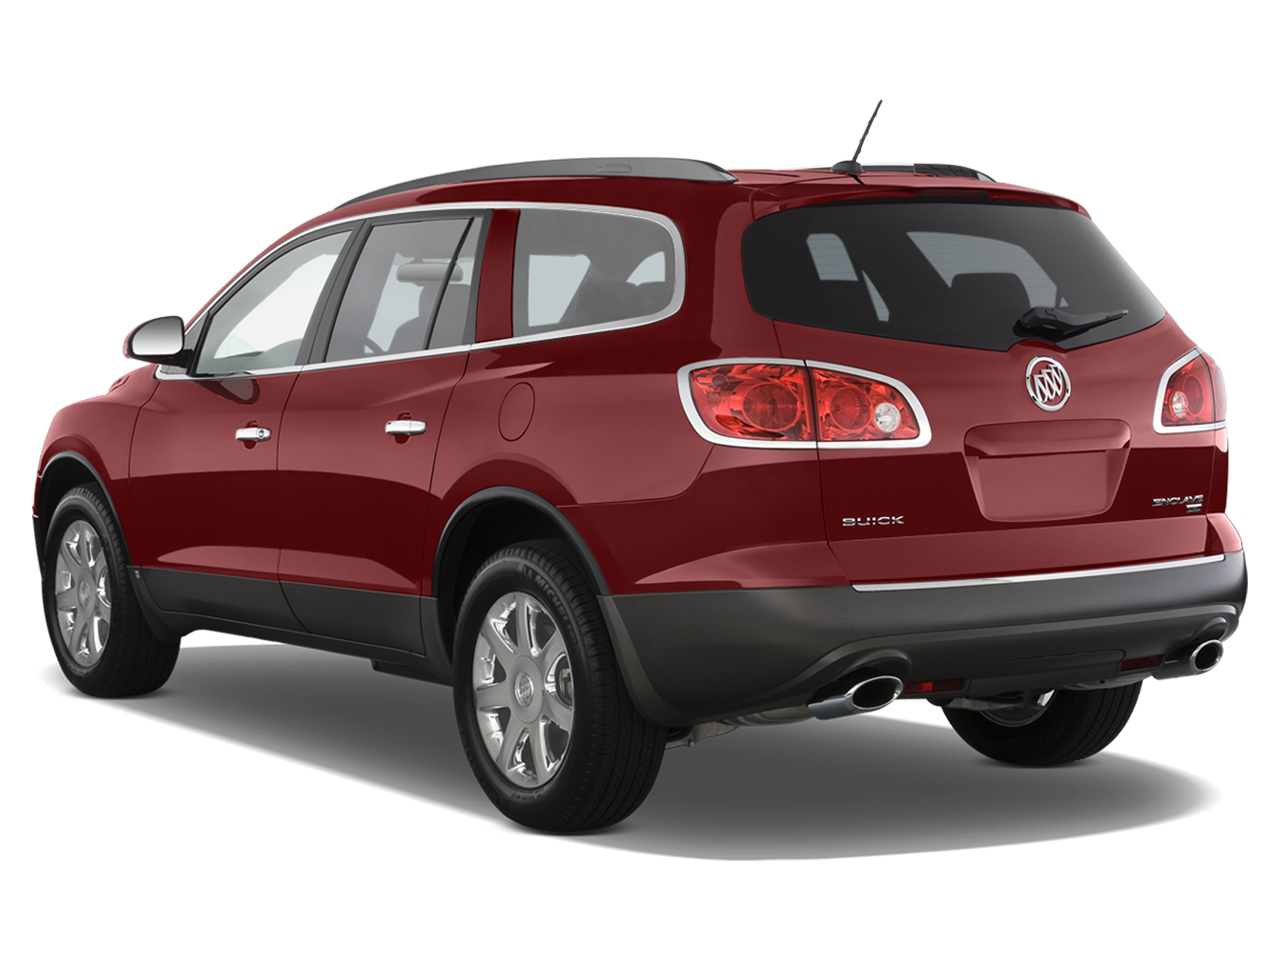 2010 Buick Enclave Reviews Research Enclave Prices